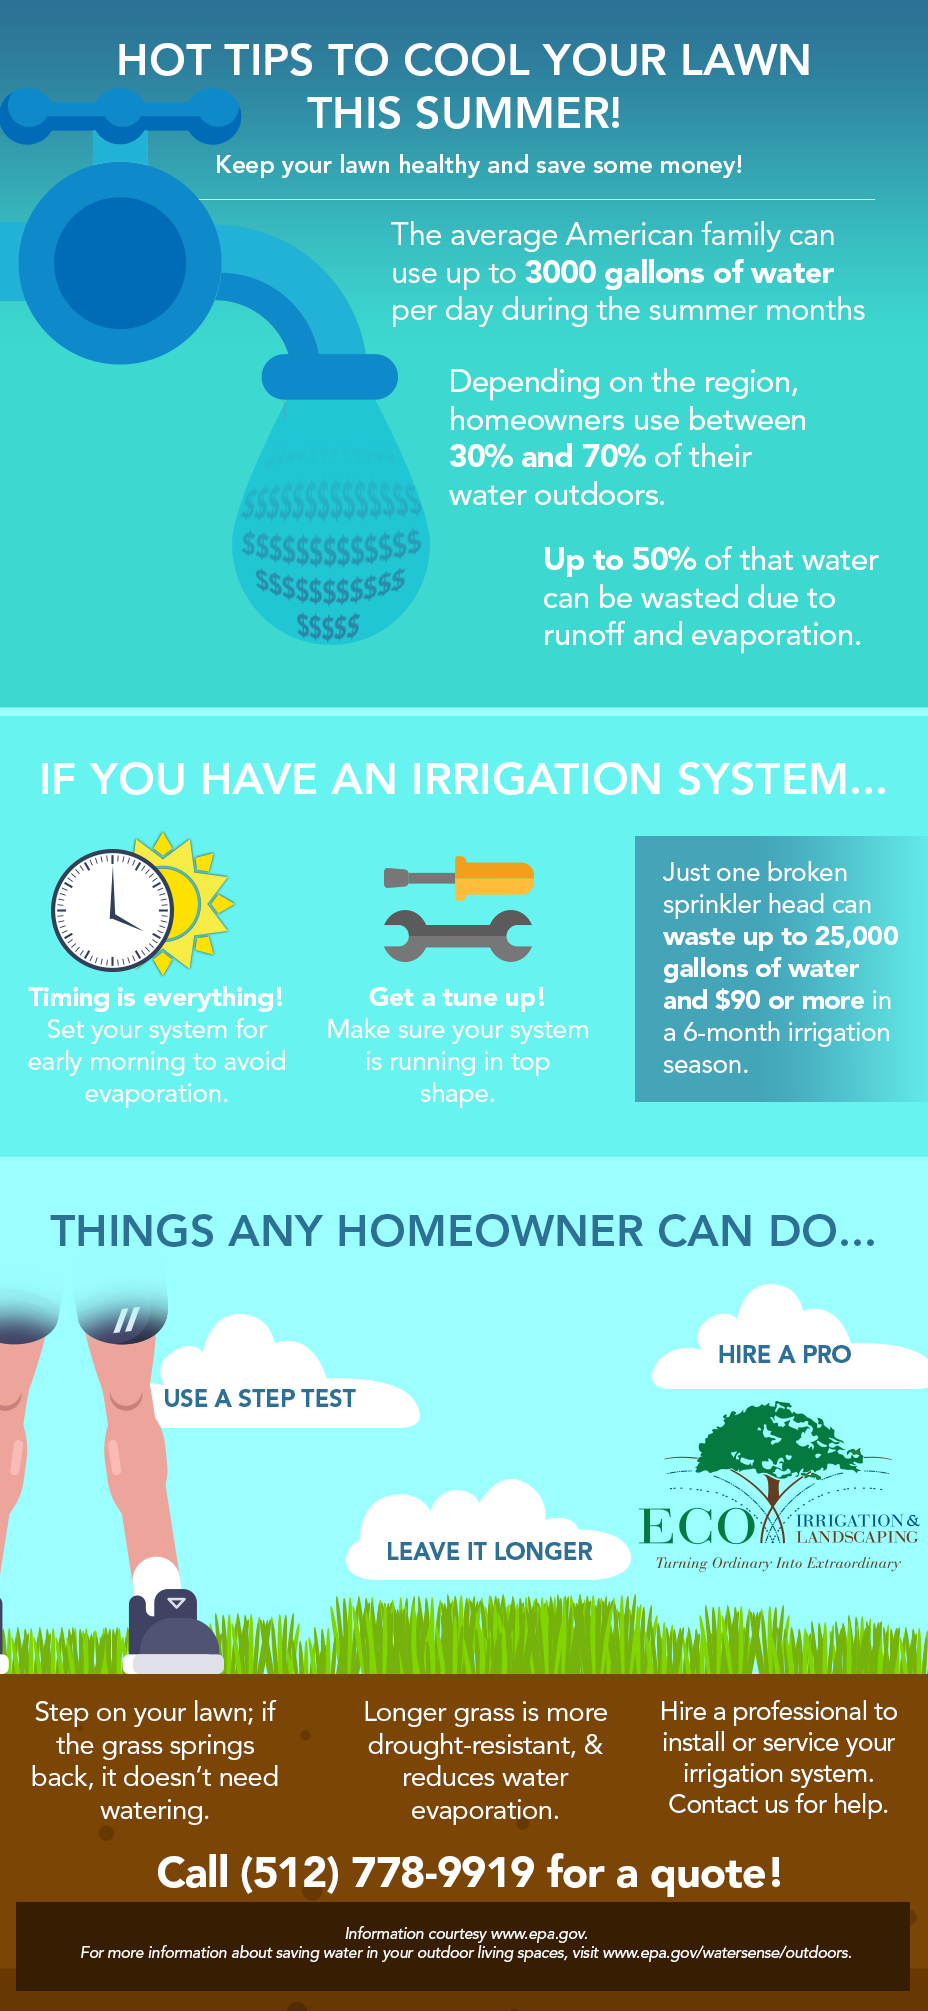 Lawn Care Tips from Eco Irrigation & Landscaping